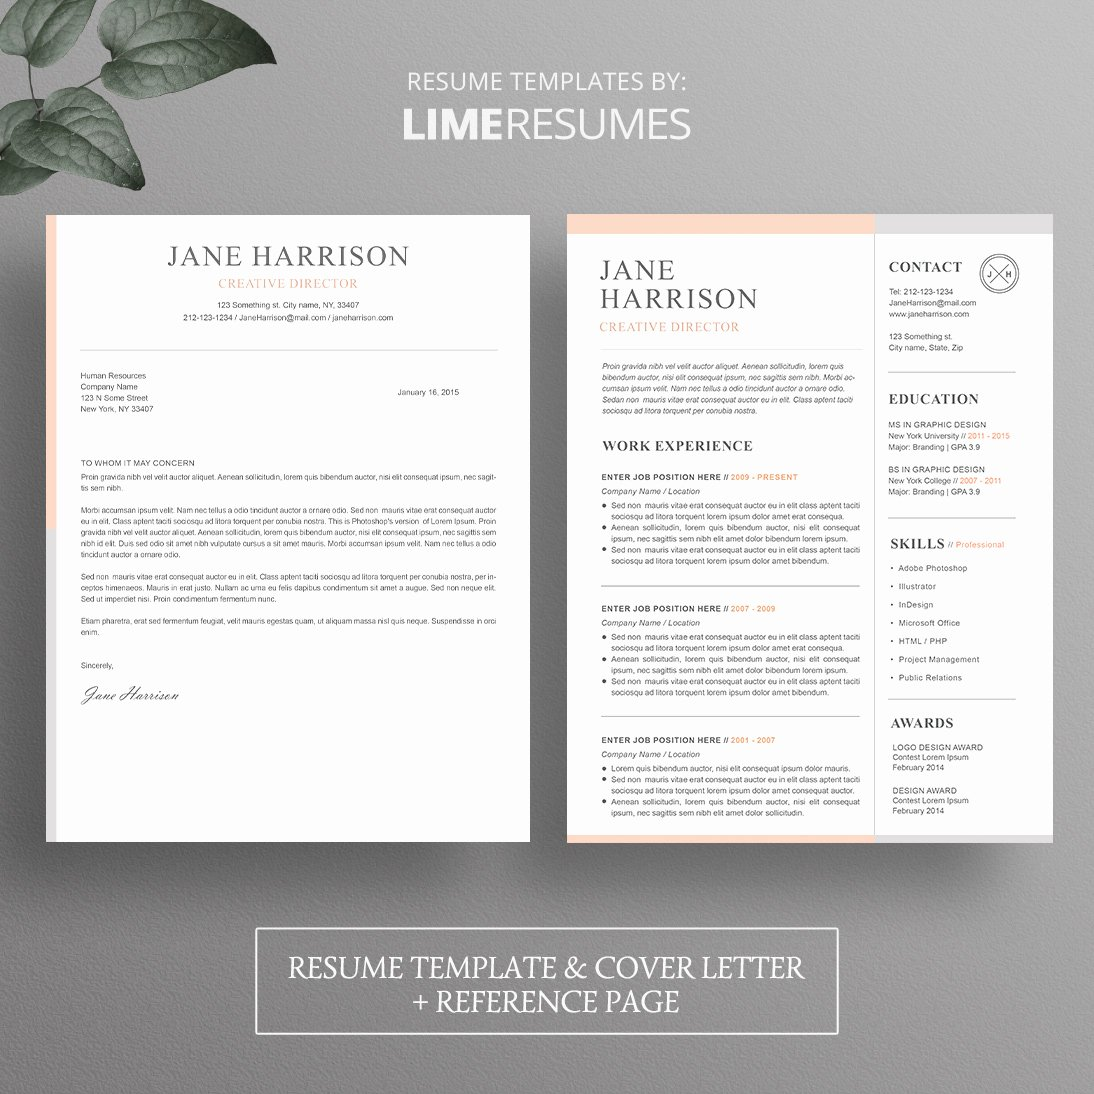 Microsoft Word Cover Letter Templates Best Of Resume Template Cover Letter Template for Word